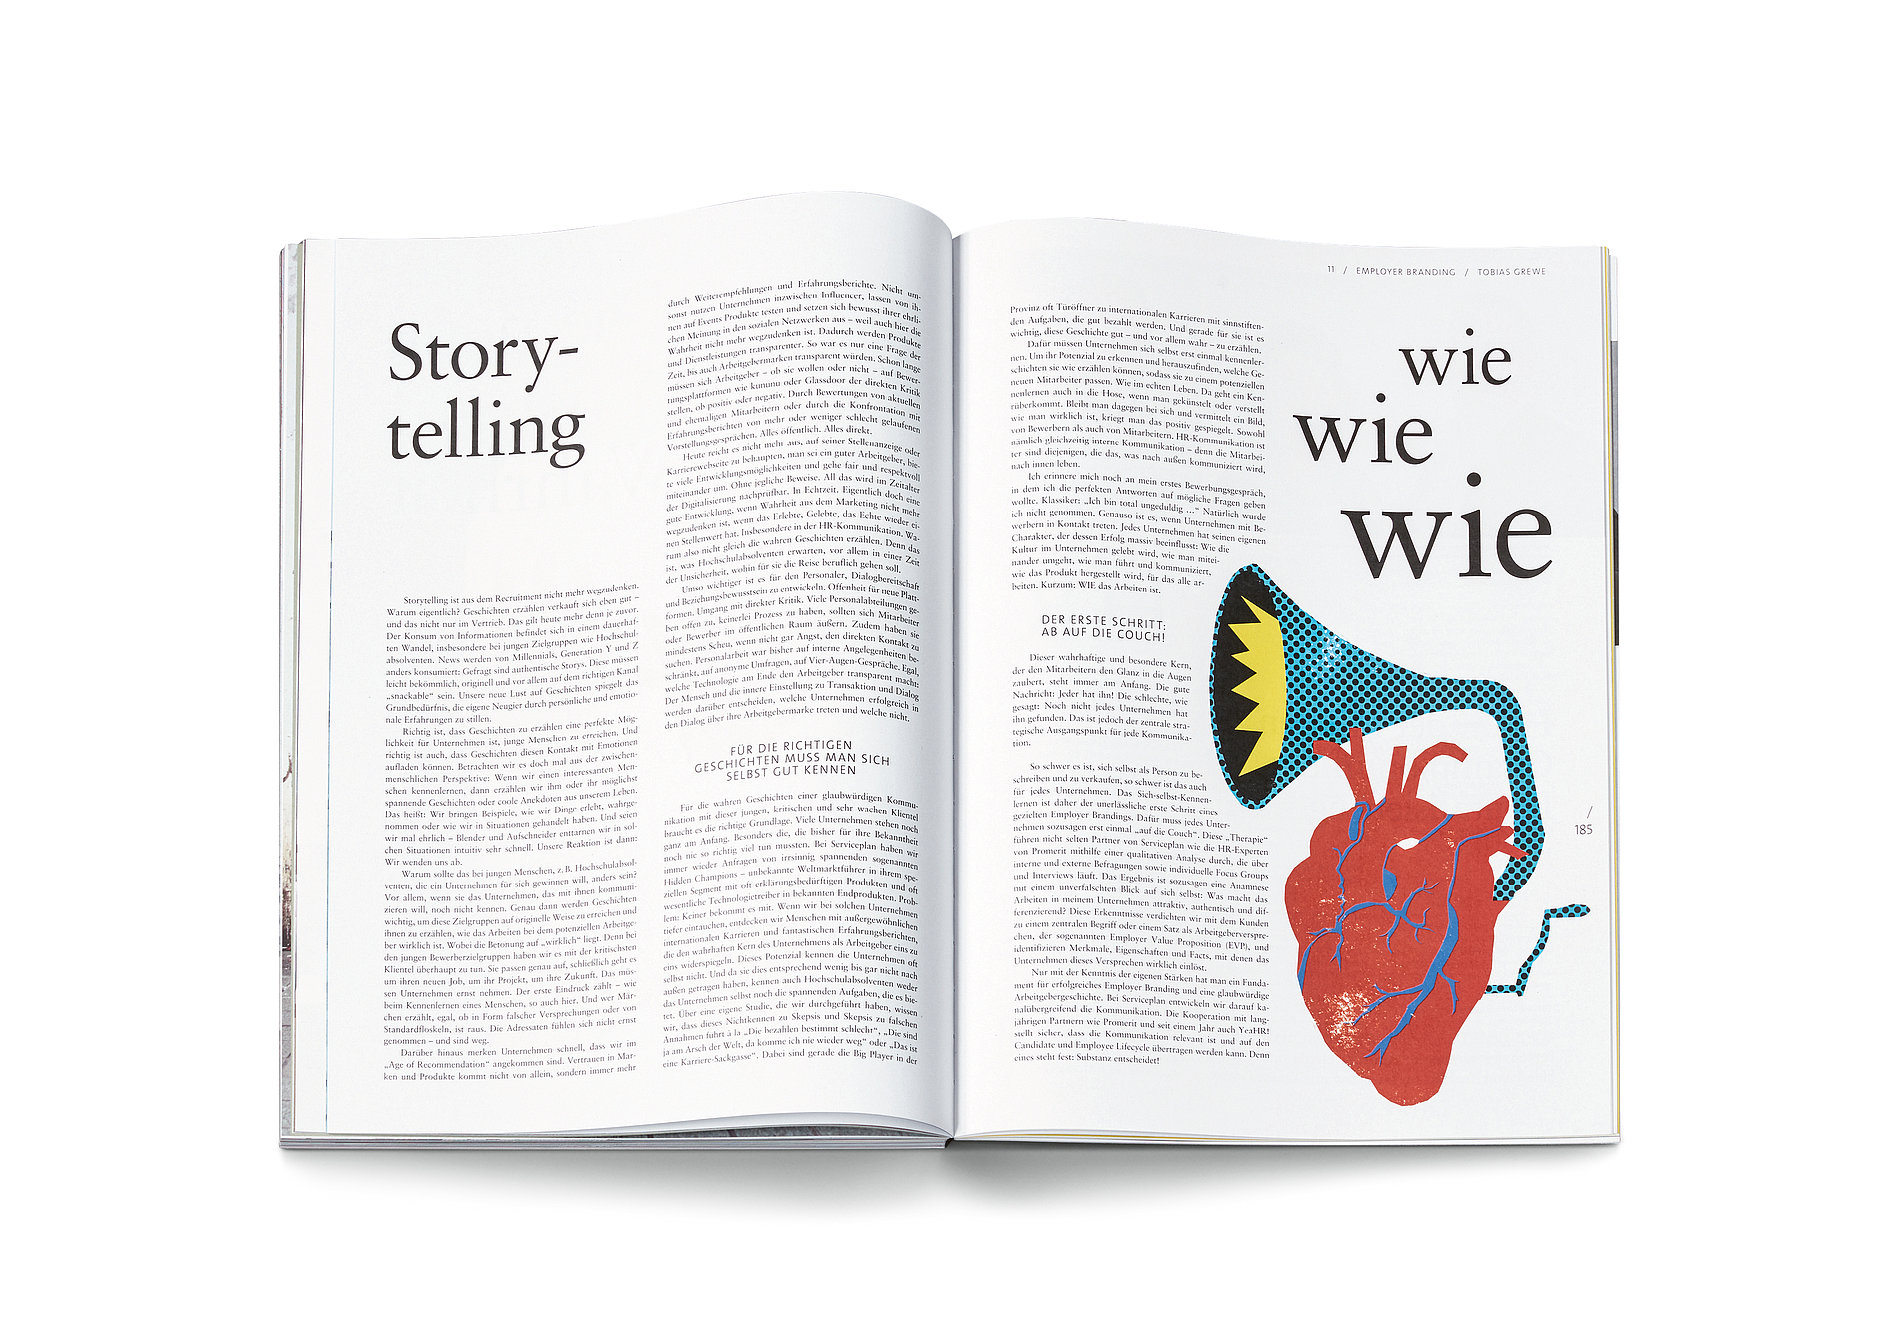 TWELVE – The Magazine for Brands, Media and Communication | Red Dot Design Award